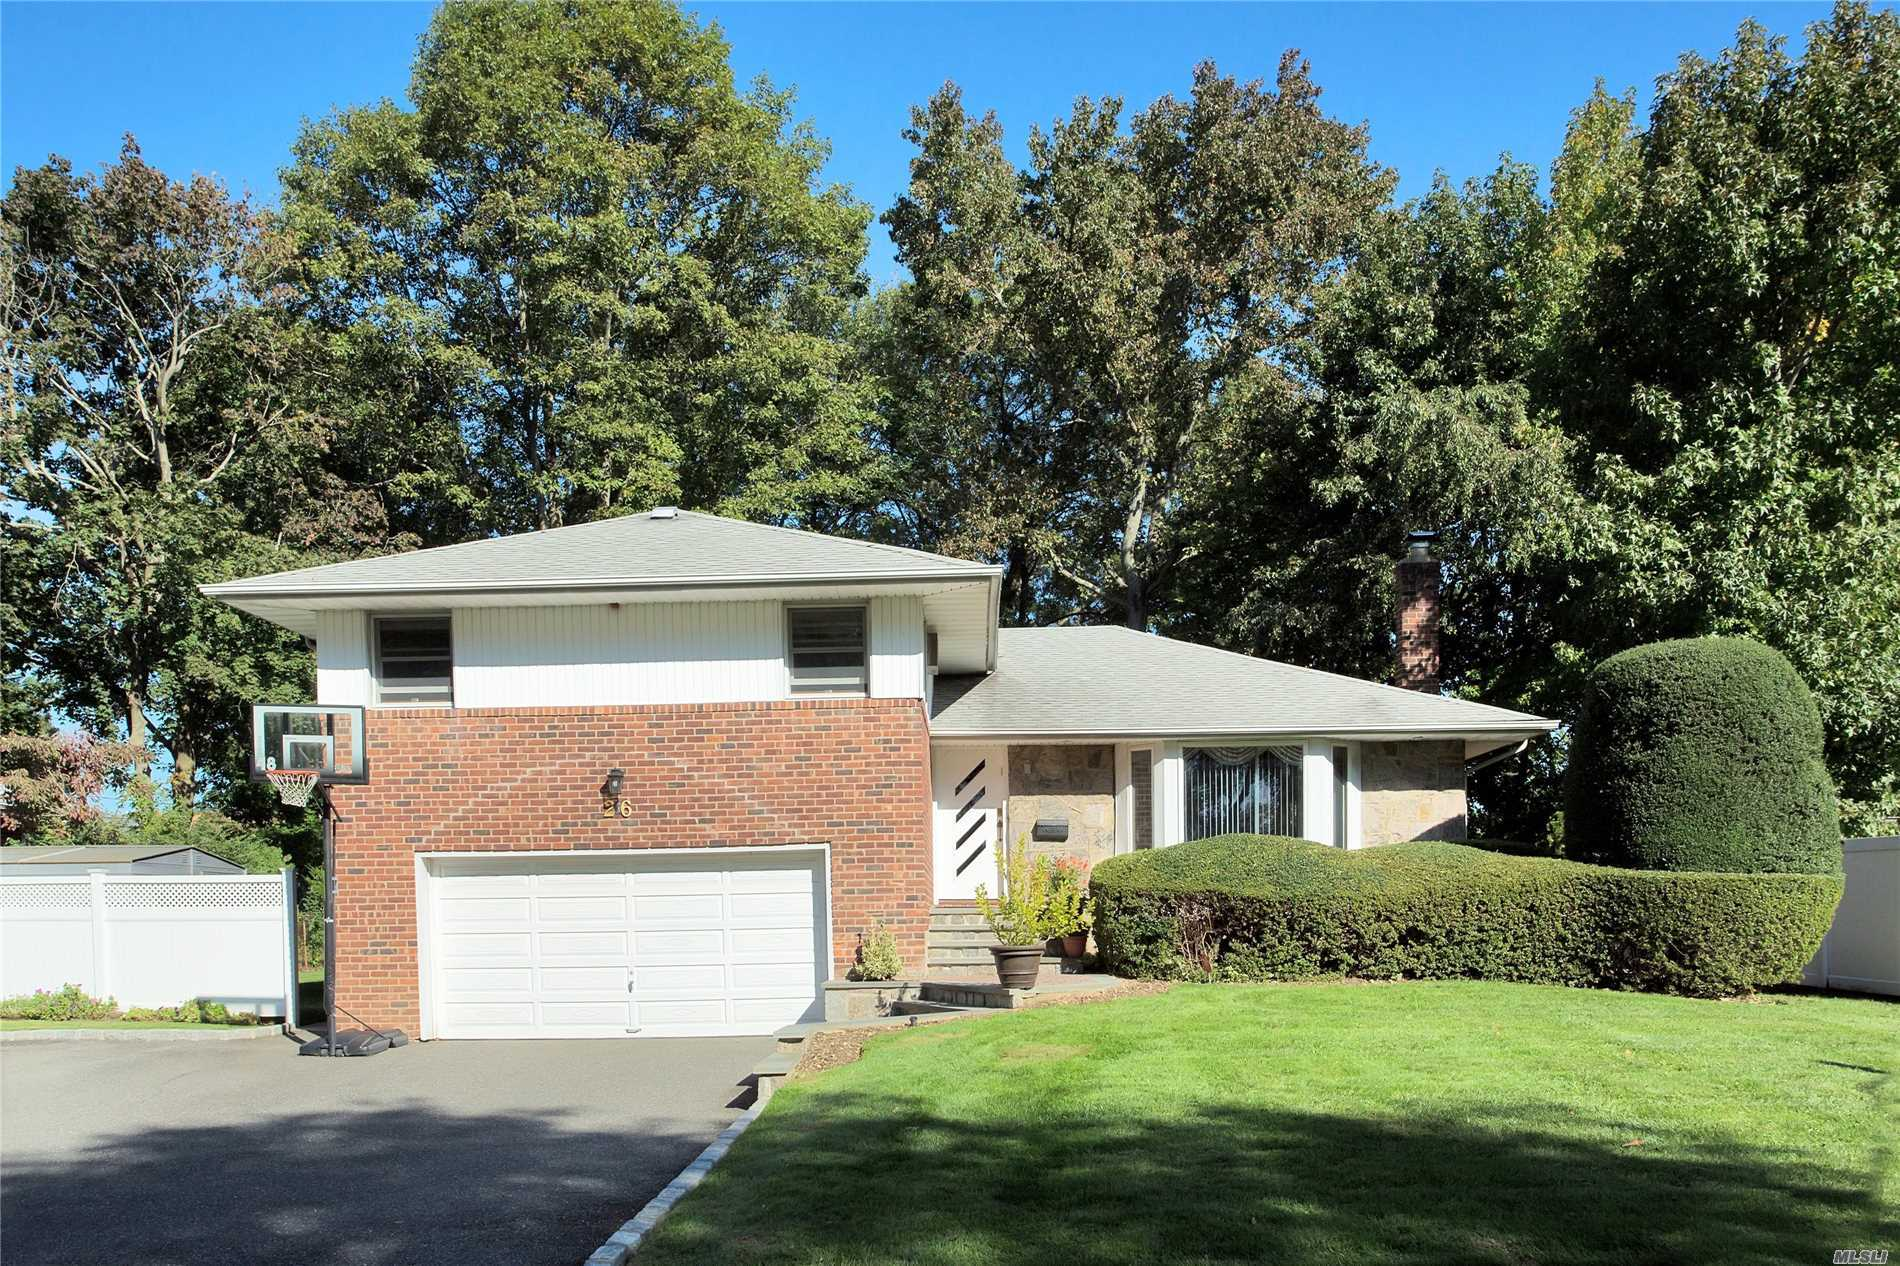 Bright Expanded Split w/Renovated EIK w/SS Appl. & Quartz Counters and Vaulted Ceiling w/Skylites, Gas Cooking, Anderson Windows, HW Floors, Oversized Flat Property w/ Deck and Patio w/New Pavers. Baylis Elem, Thompson Middle, Syosset HS